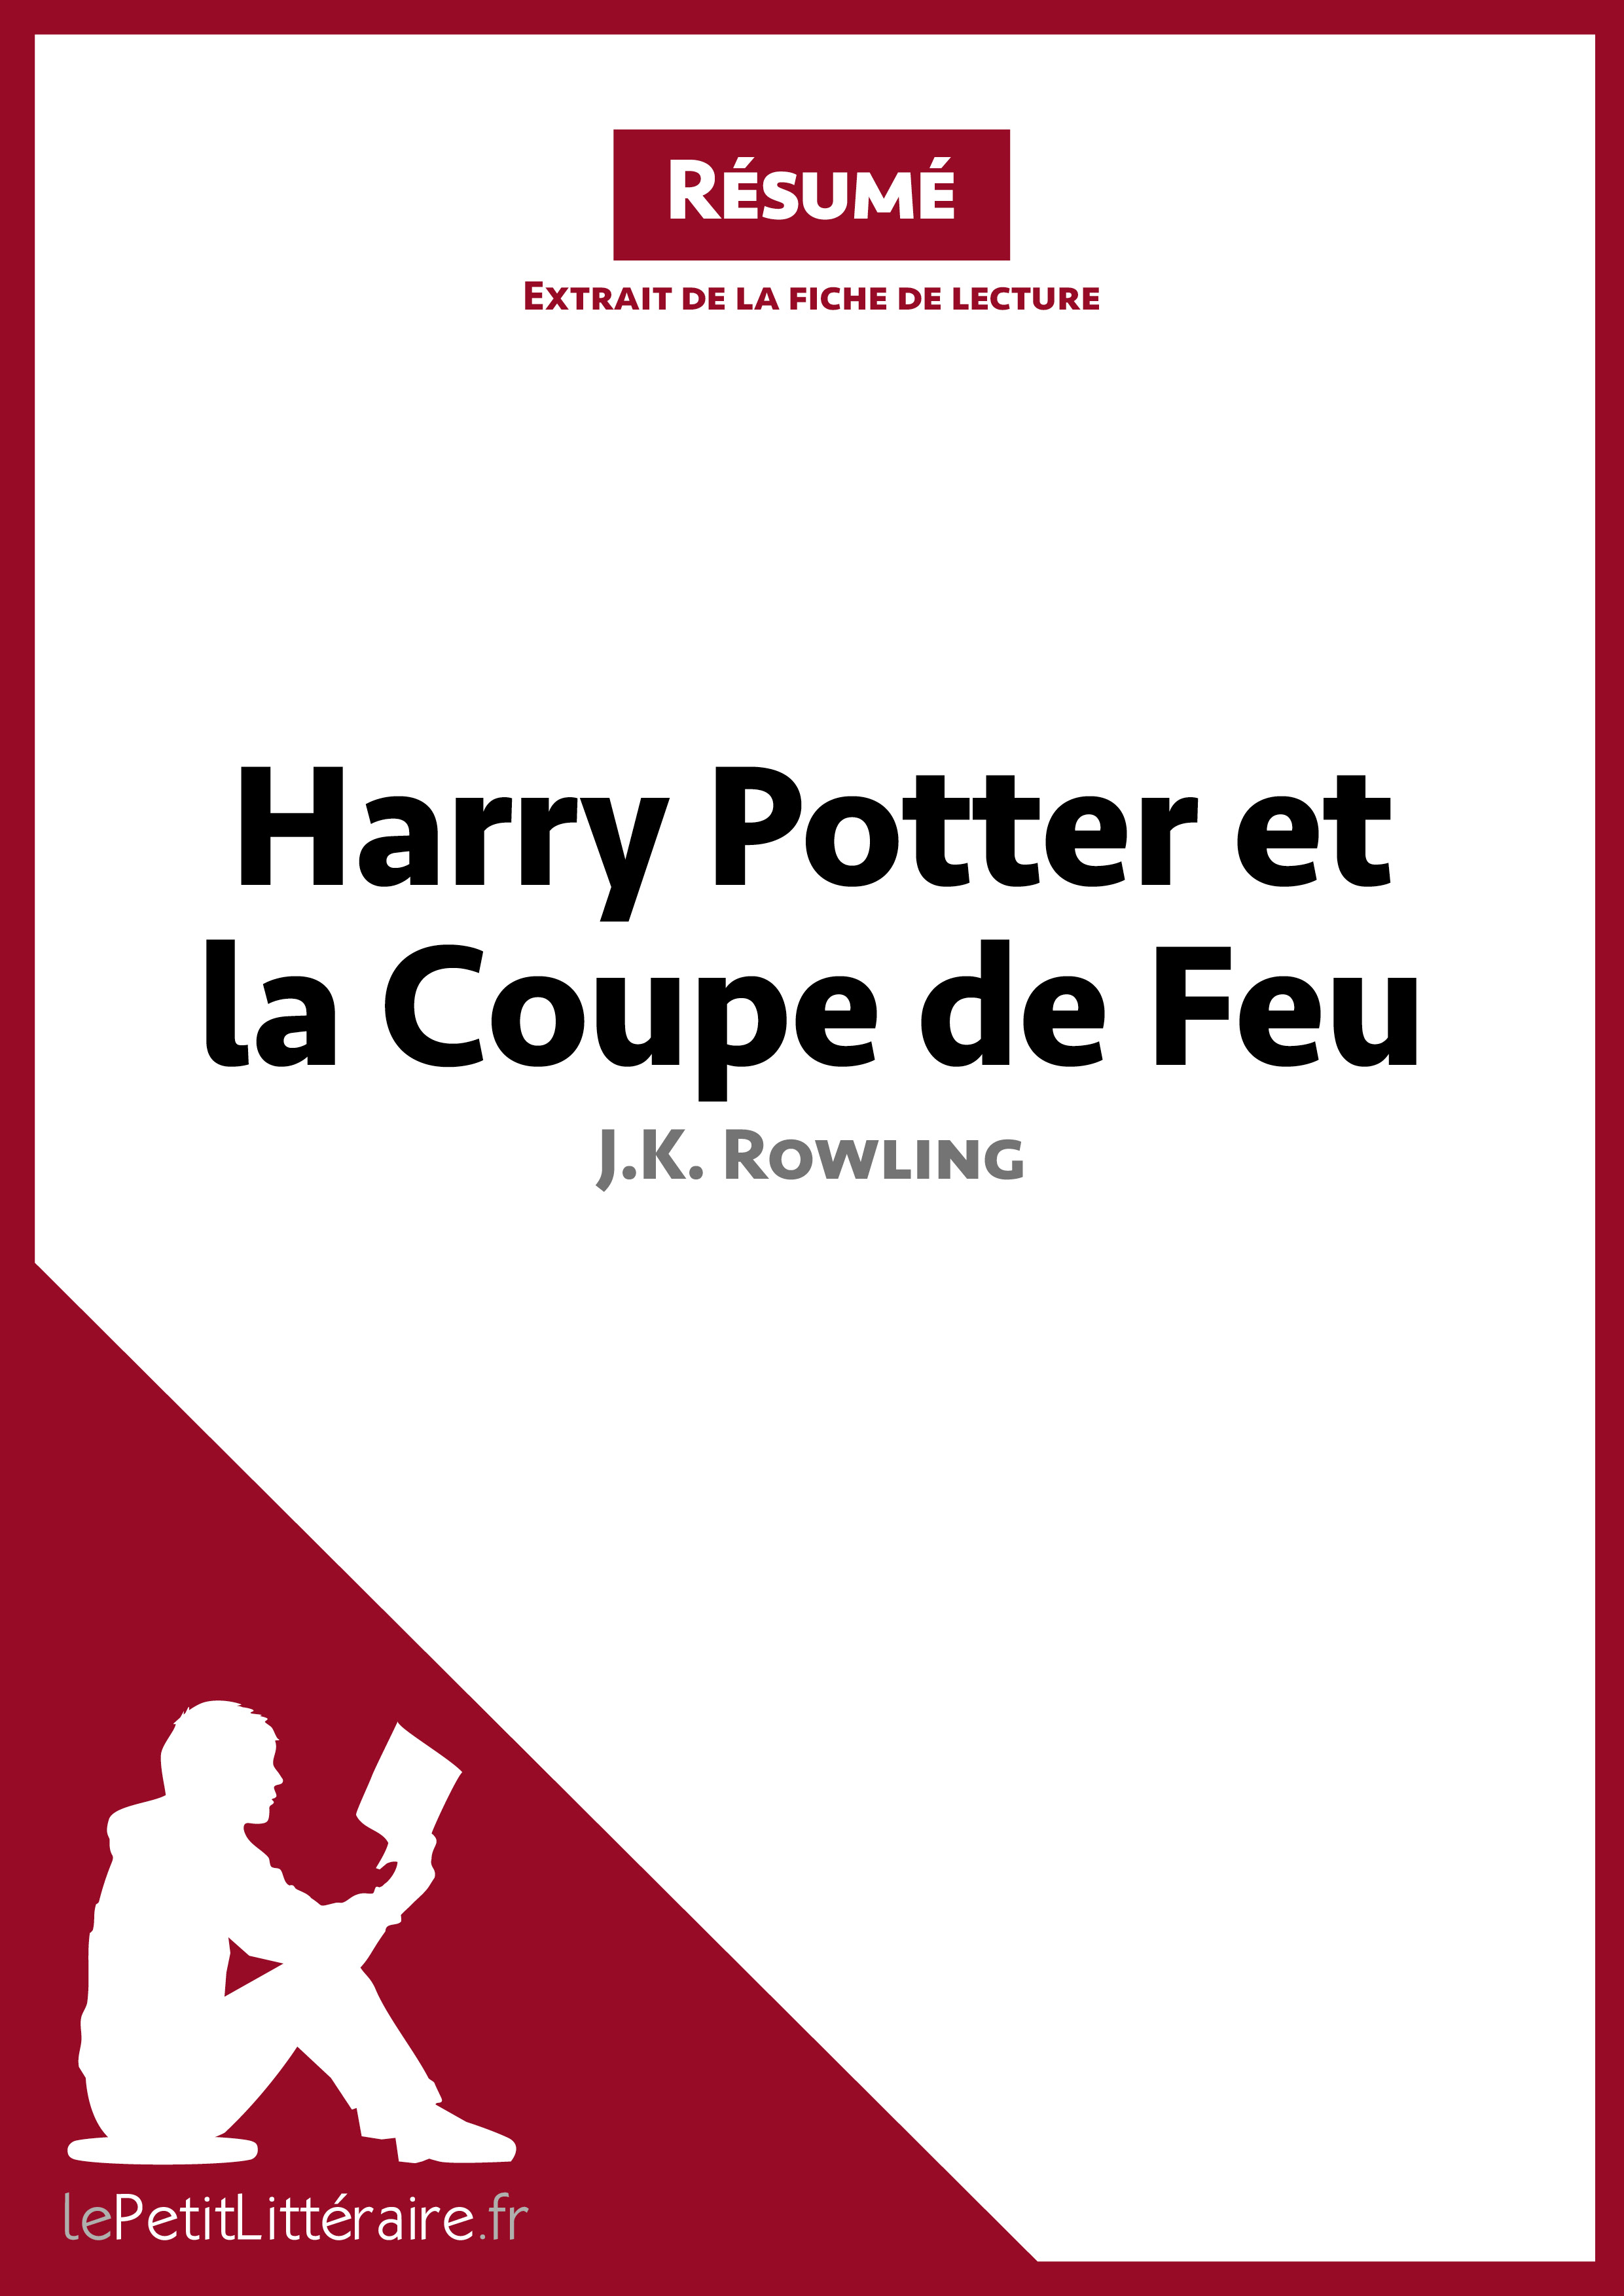 Lepetitlitteraire Fr Harry Potter Et La Coupe De Feu